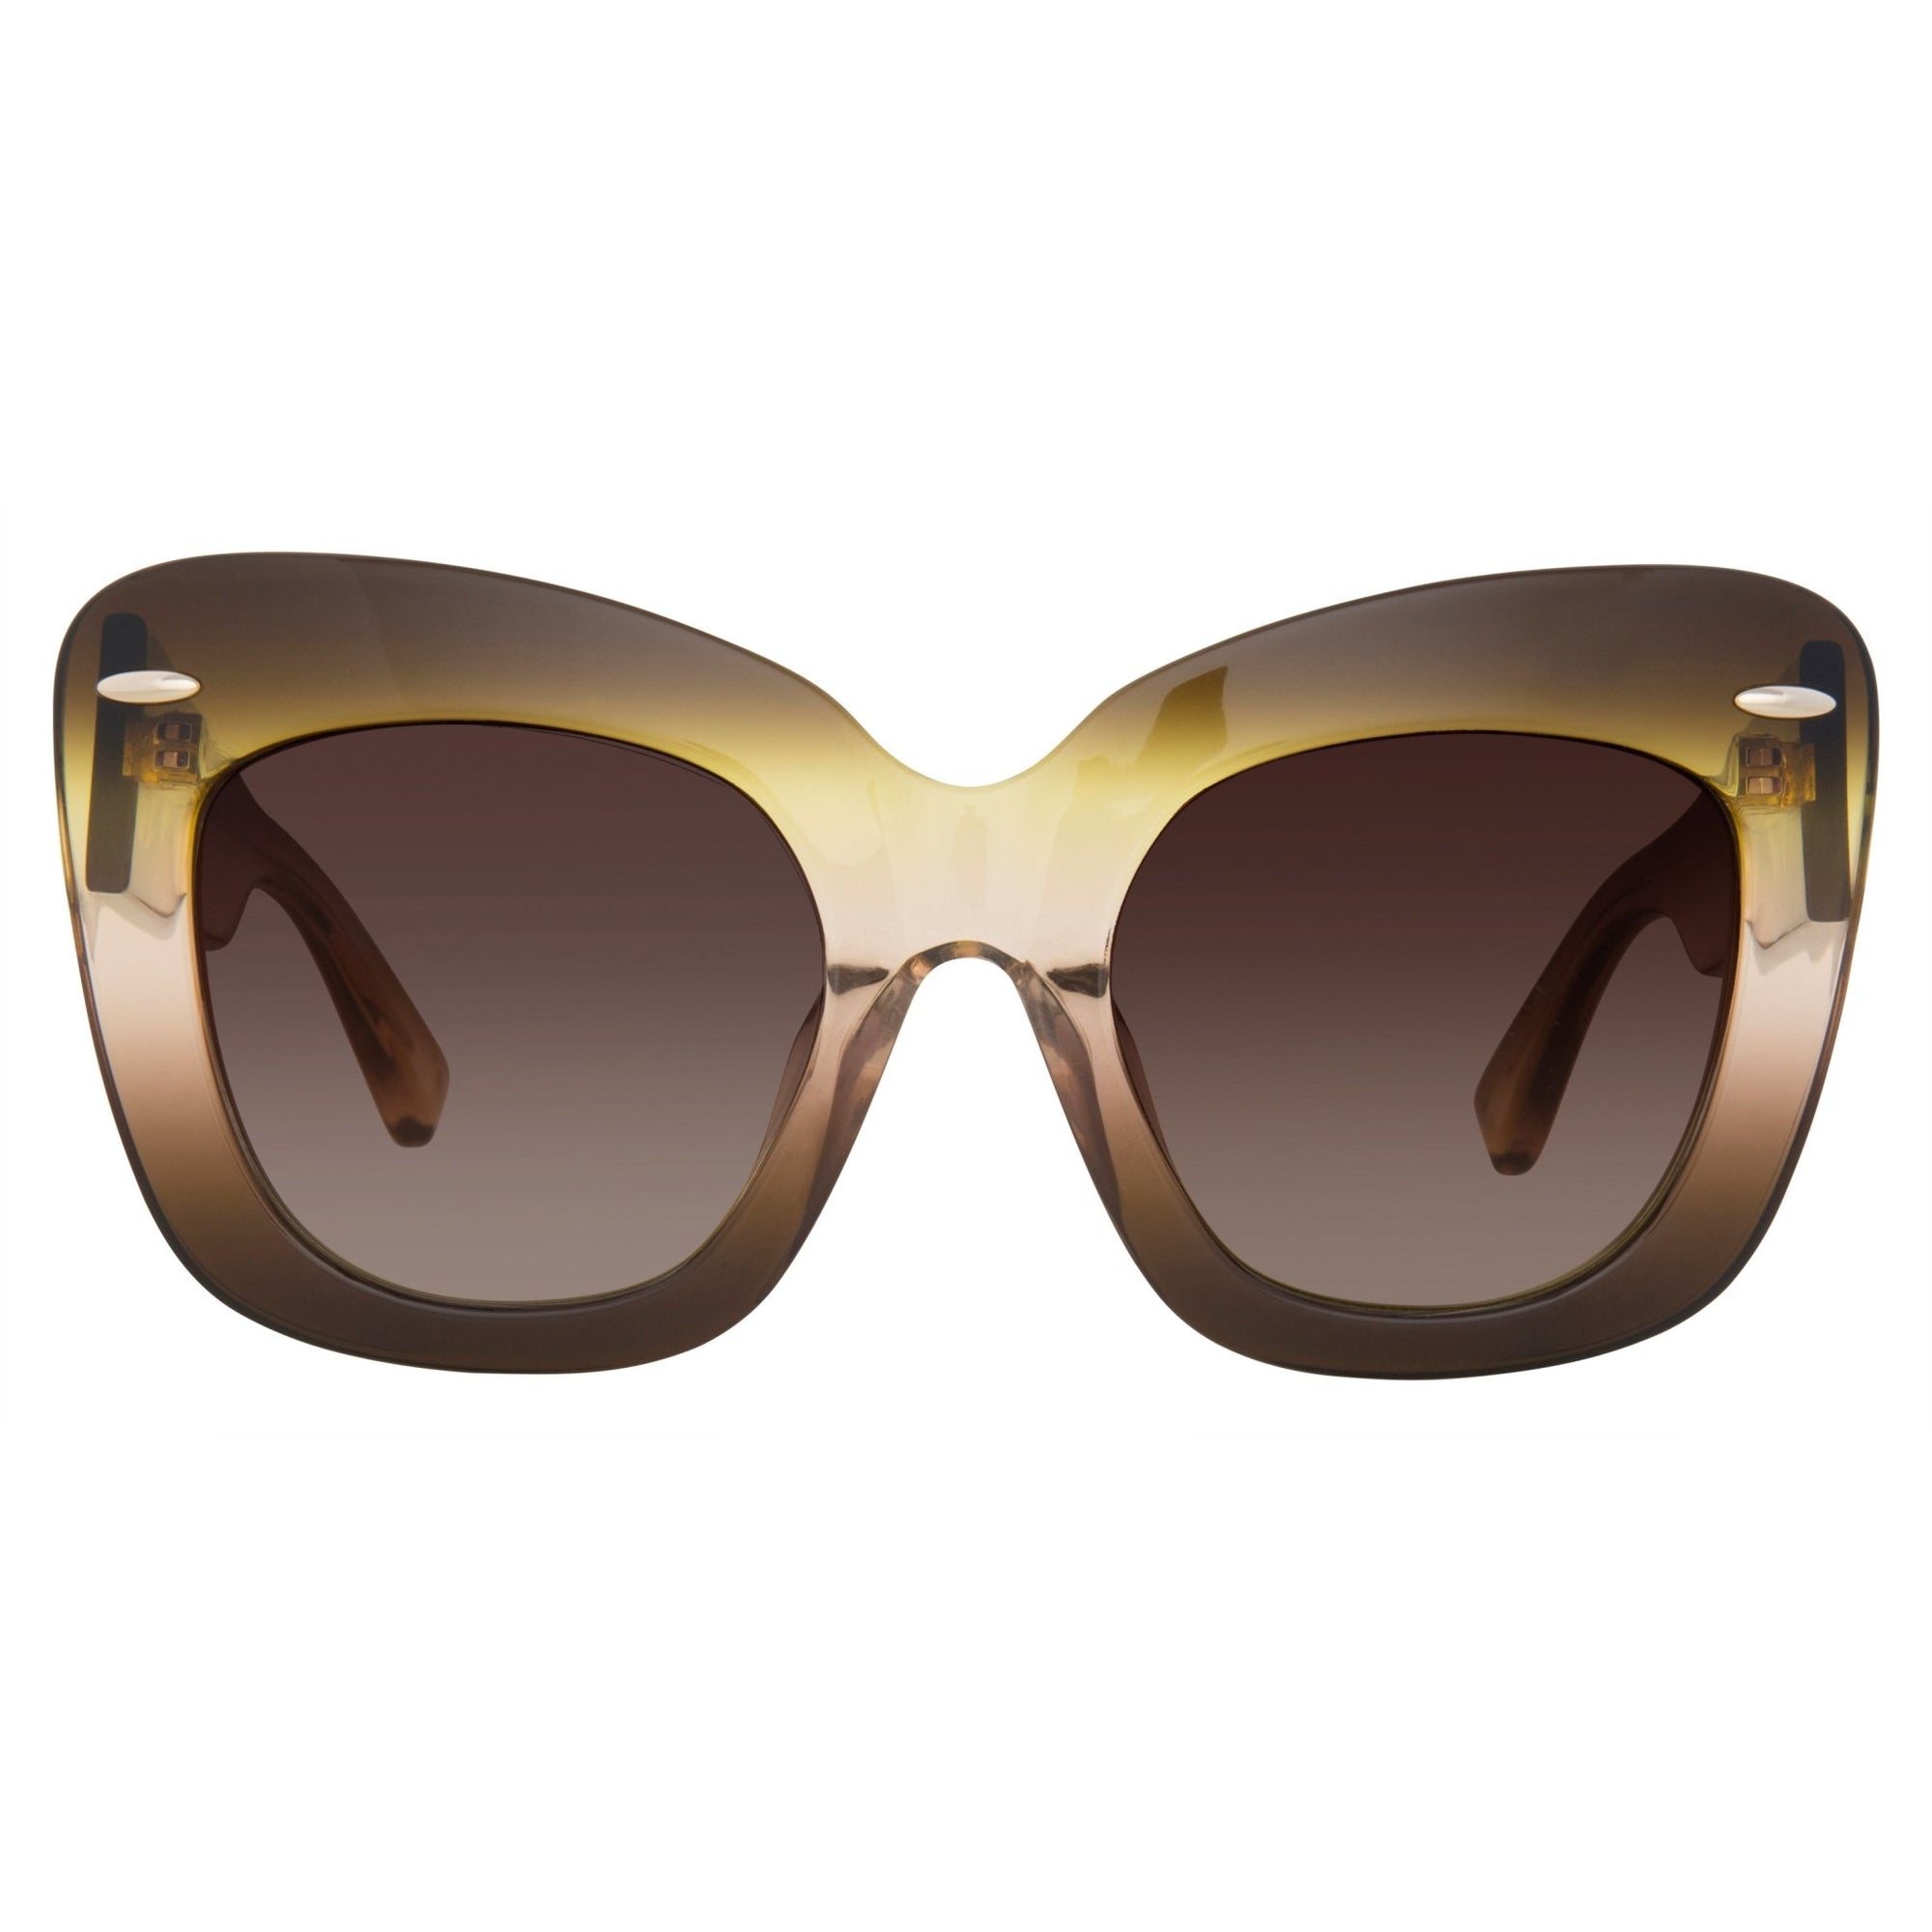 Erdem Women Sunglasses Cat Eye Brown Gradient Light Gold with Brown Graduated Lenses EDM24C2SUN - Watches & Crystals